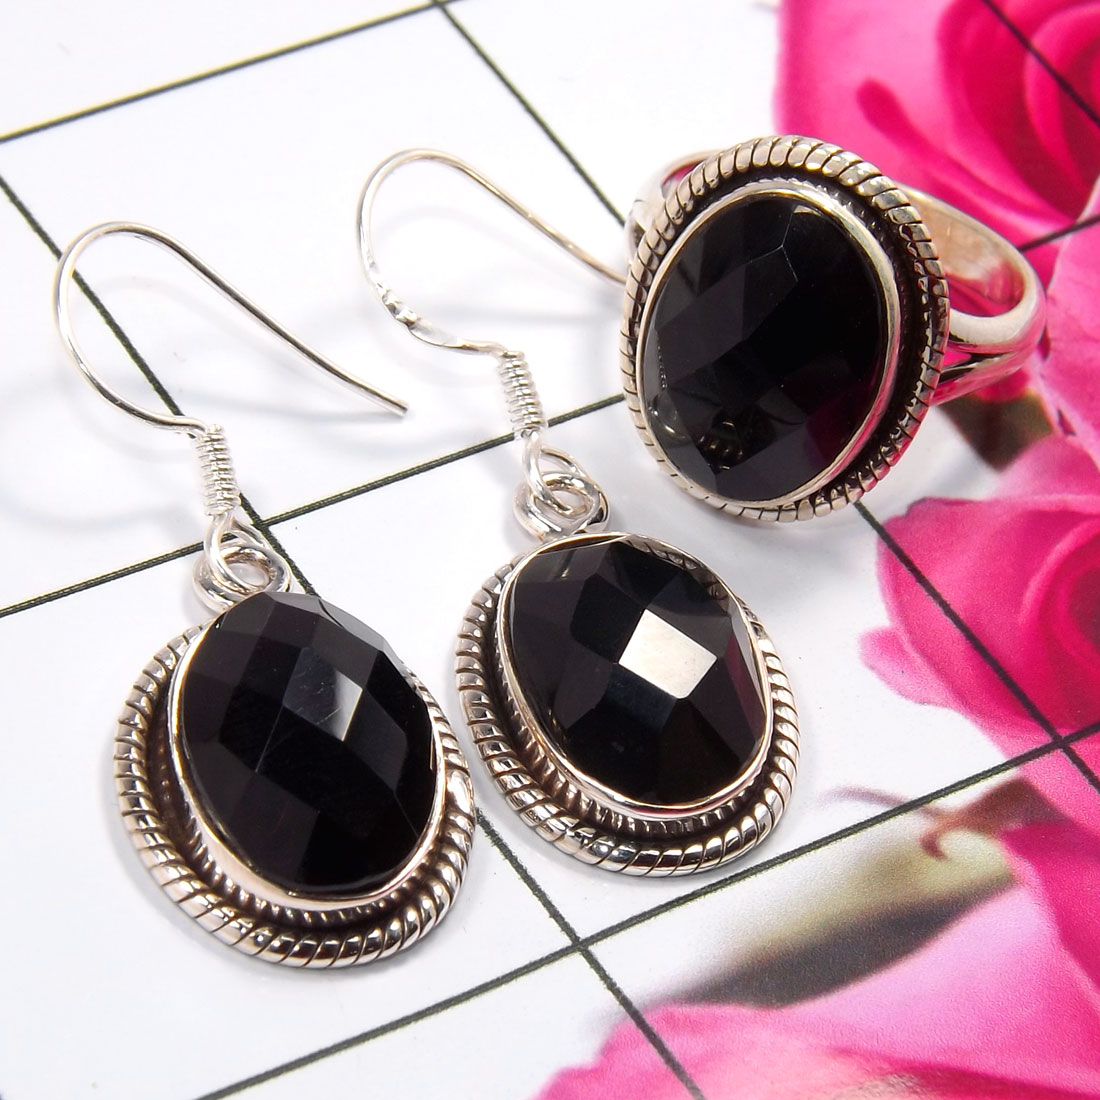 Black Onyx E - NDS956-Stunning Earring & Ring Set Company Made 925 Sterling Sil